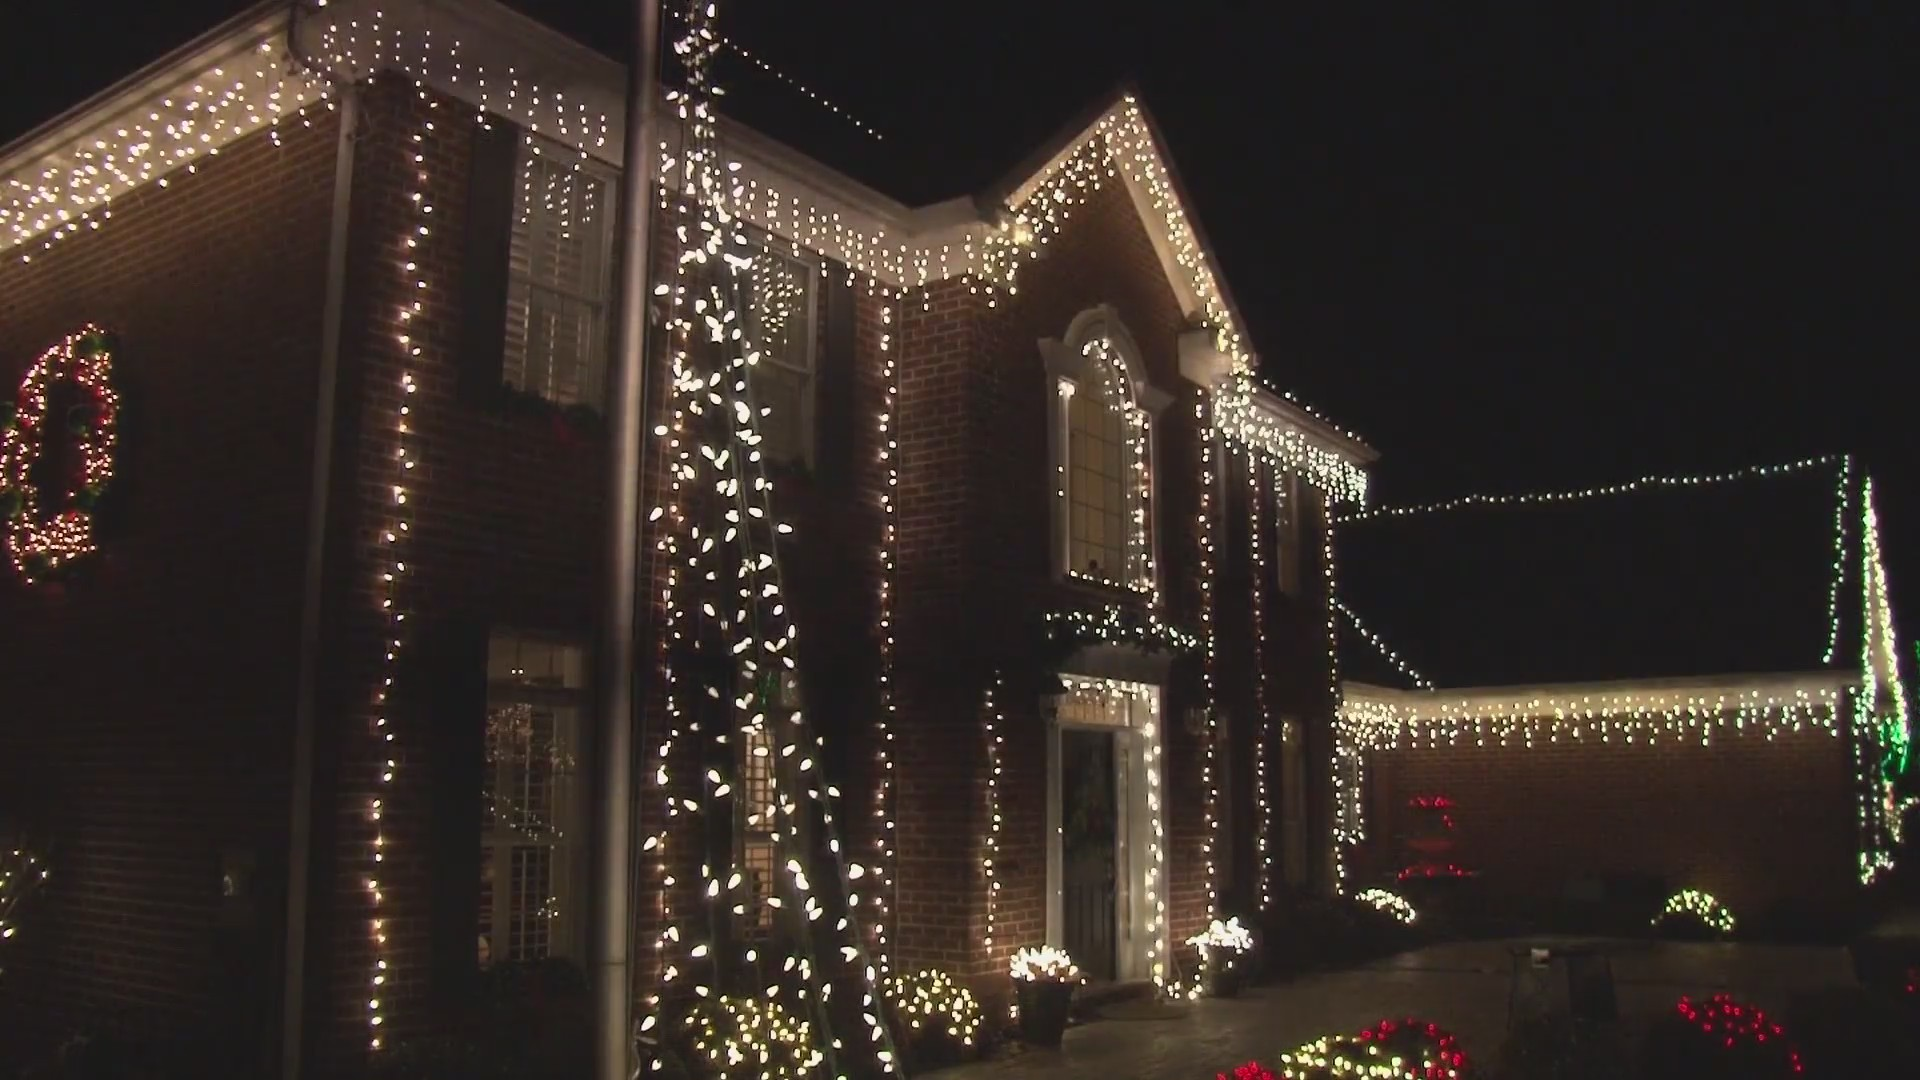 HOLIDAY LIGHT SAFETY